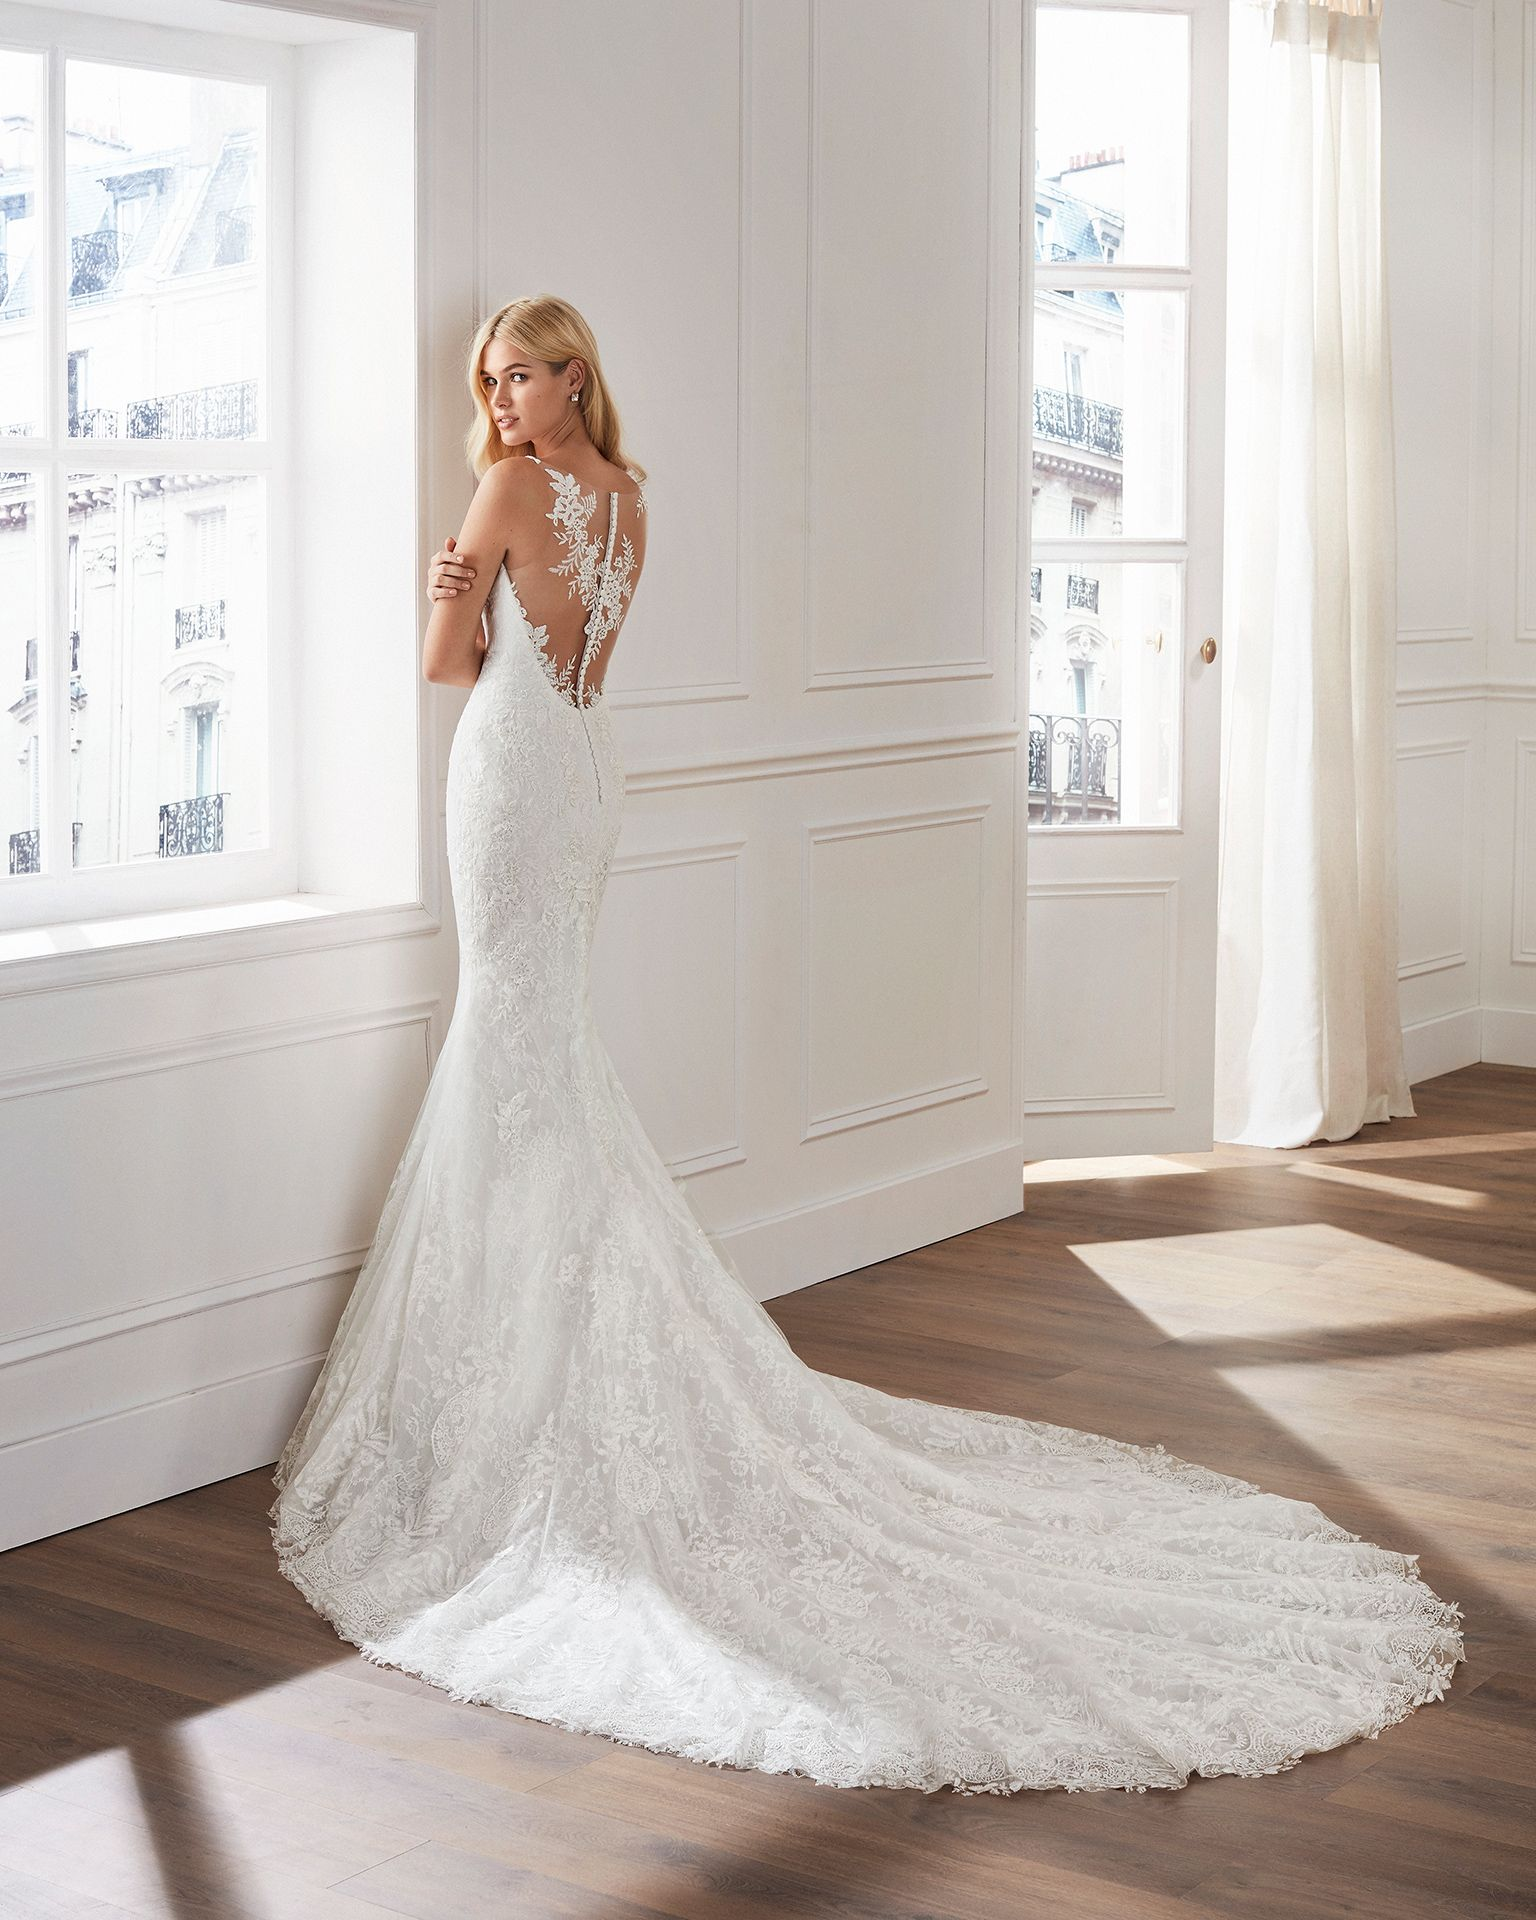 Sweetheart Neckline Lace Mermaid Wedding Dresses New 2019: Mermaid-style Lace Wedding Dress. Sweetheart Neckline And